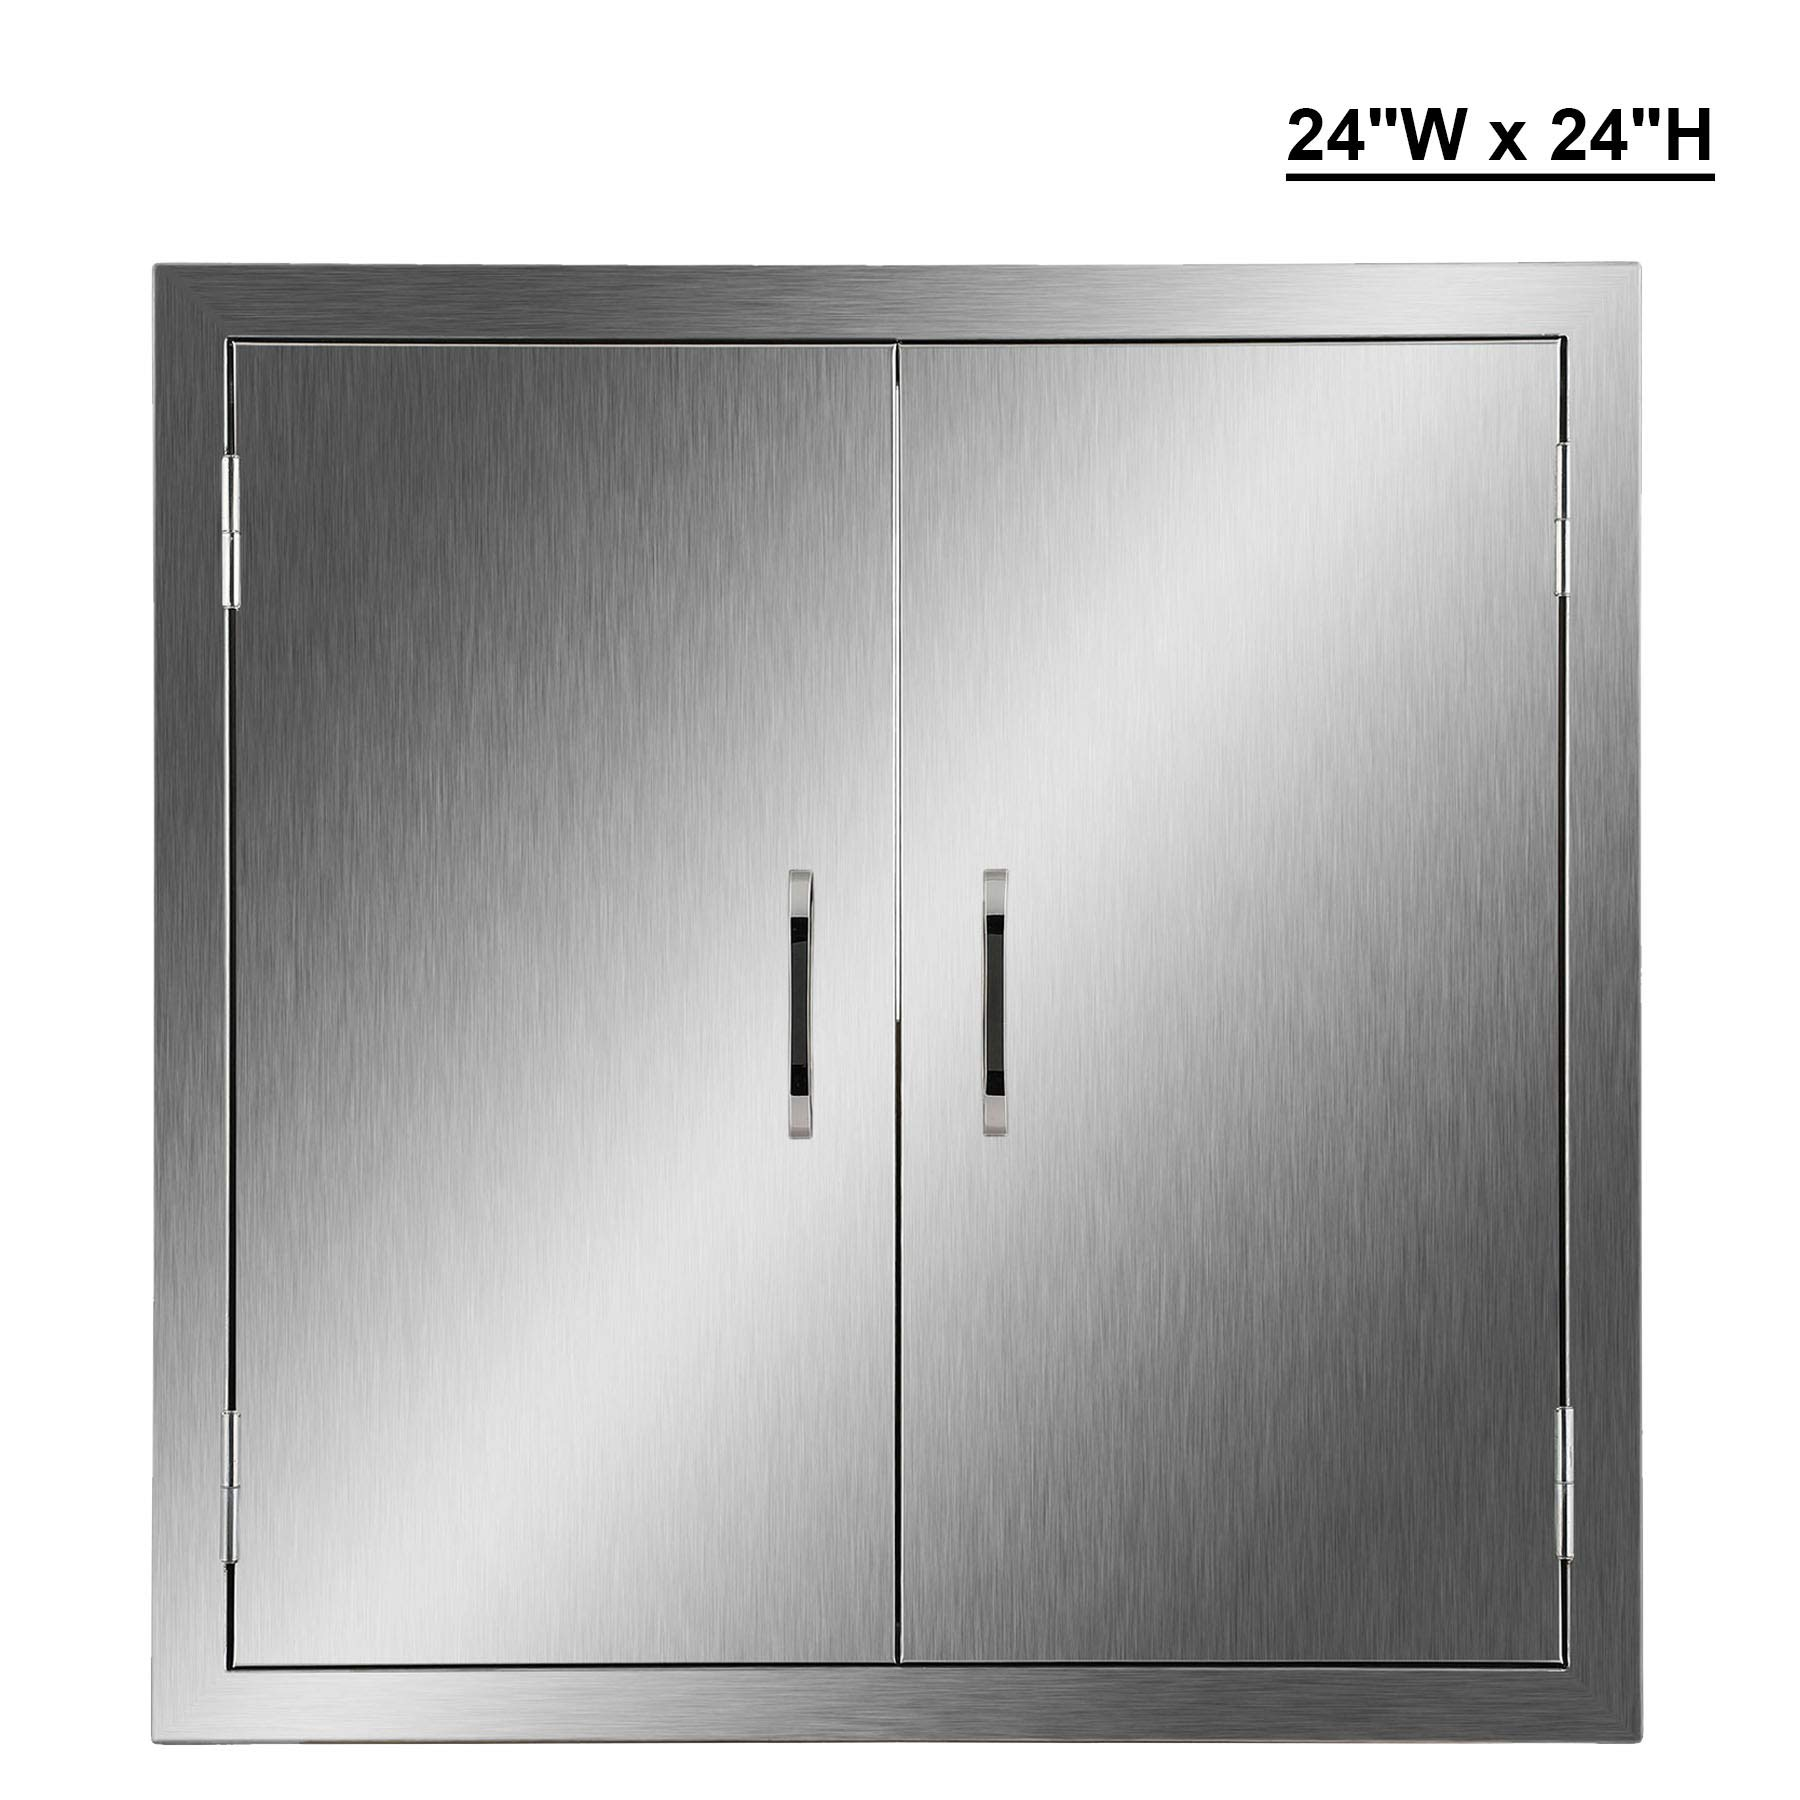 CO-Z Outdoor Kitchen Doors, 304 Brushed Stainless Steel Double BBQ Access Doors for Outdoor Kitchen, Commercial BBQ Island, Grilling Station, Outside Cabinet, Barbeque Grill, Built-in (24'' W x 24'' H)